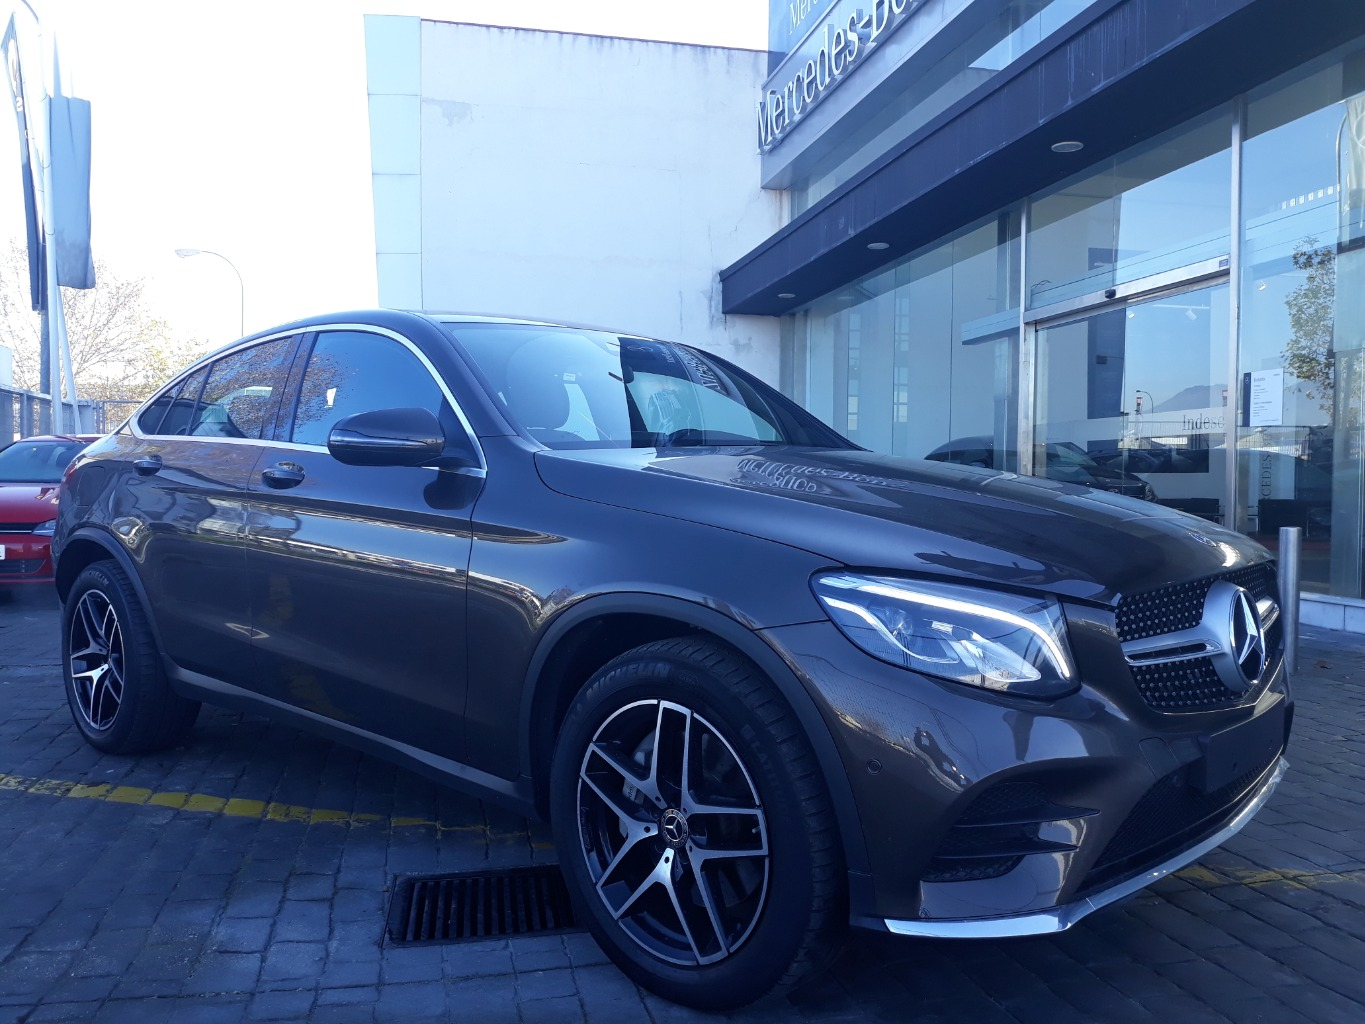 MERCEDES GLC 250 4 MATIC COUPE